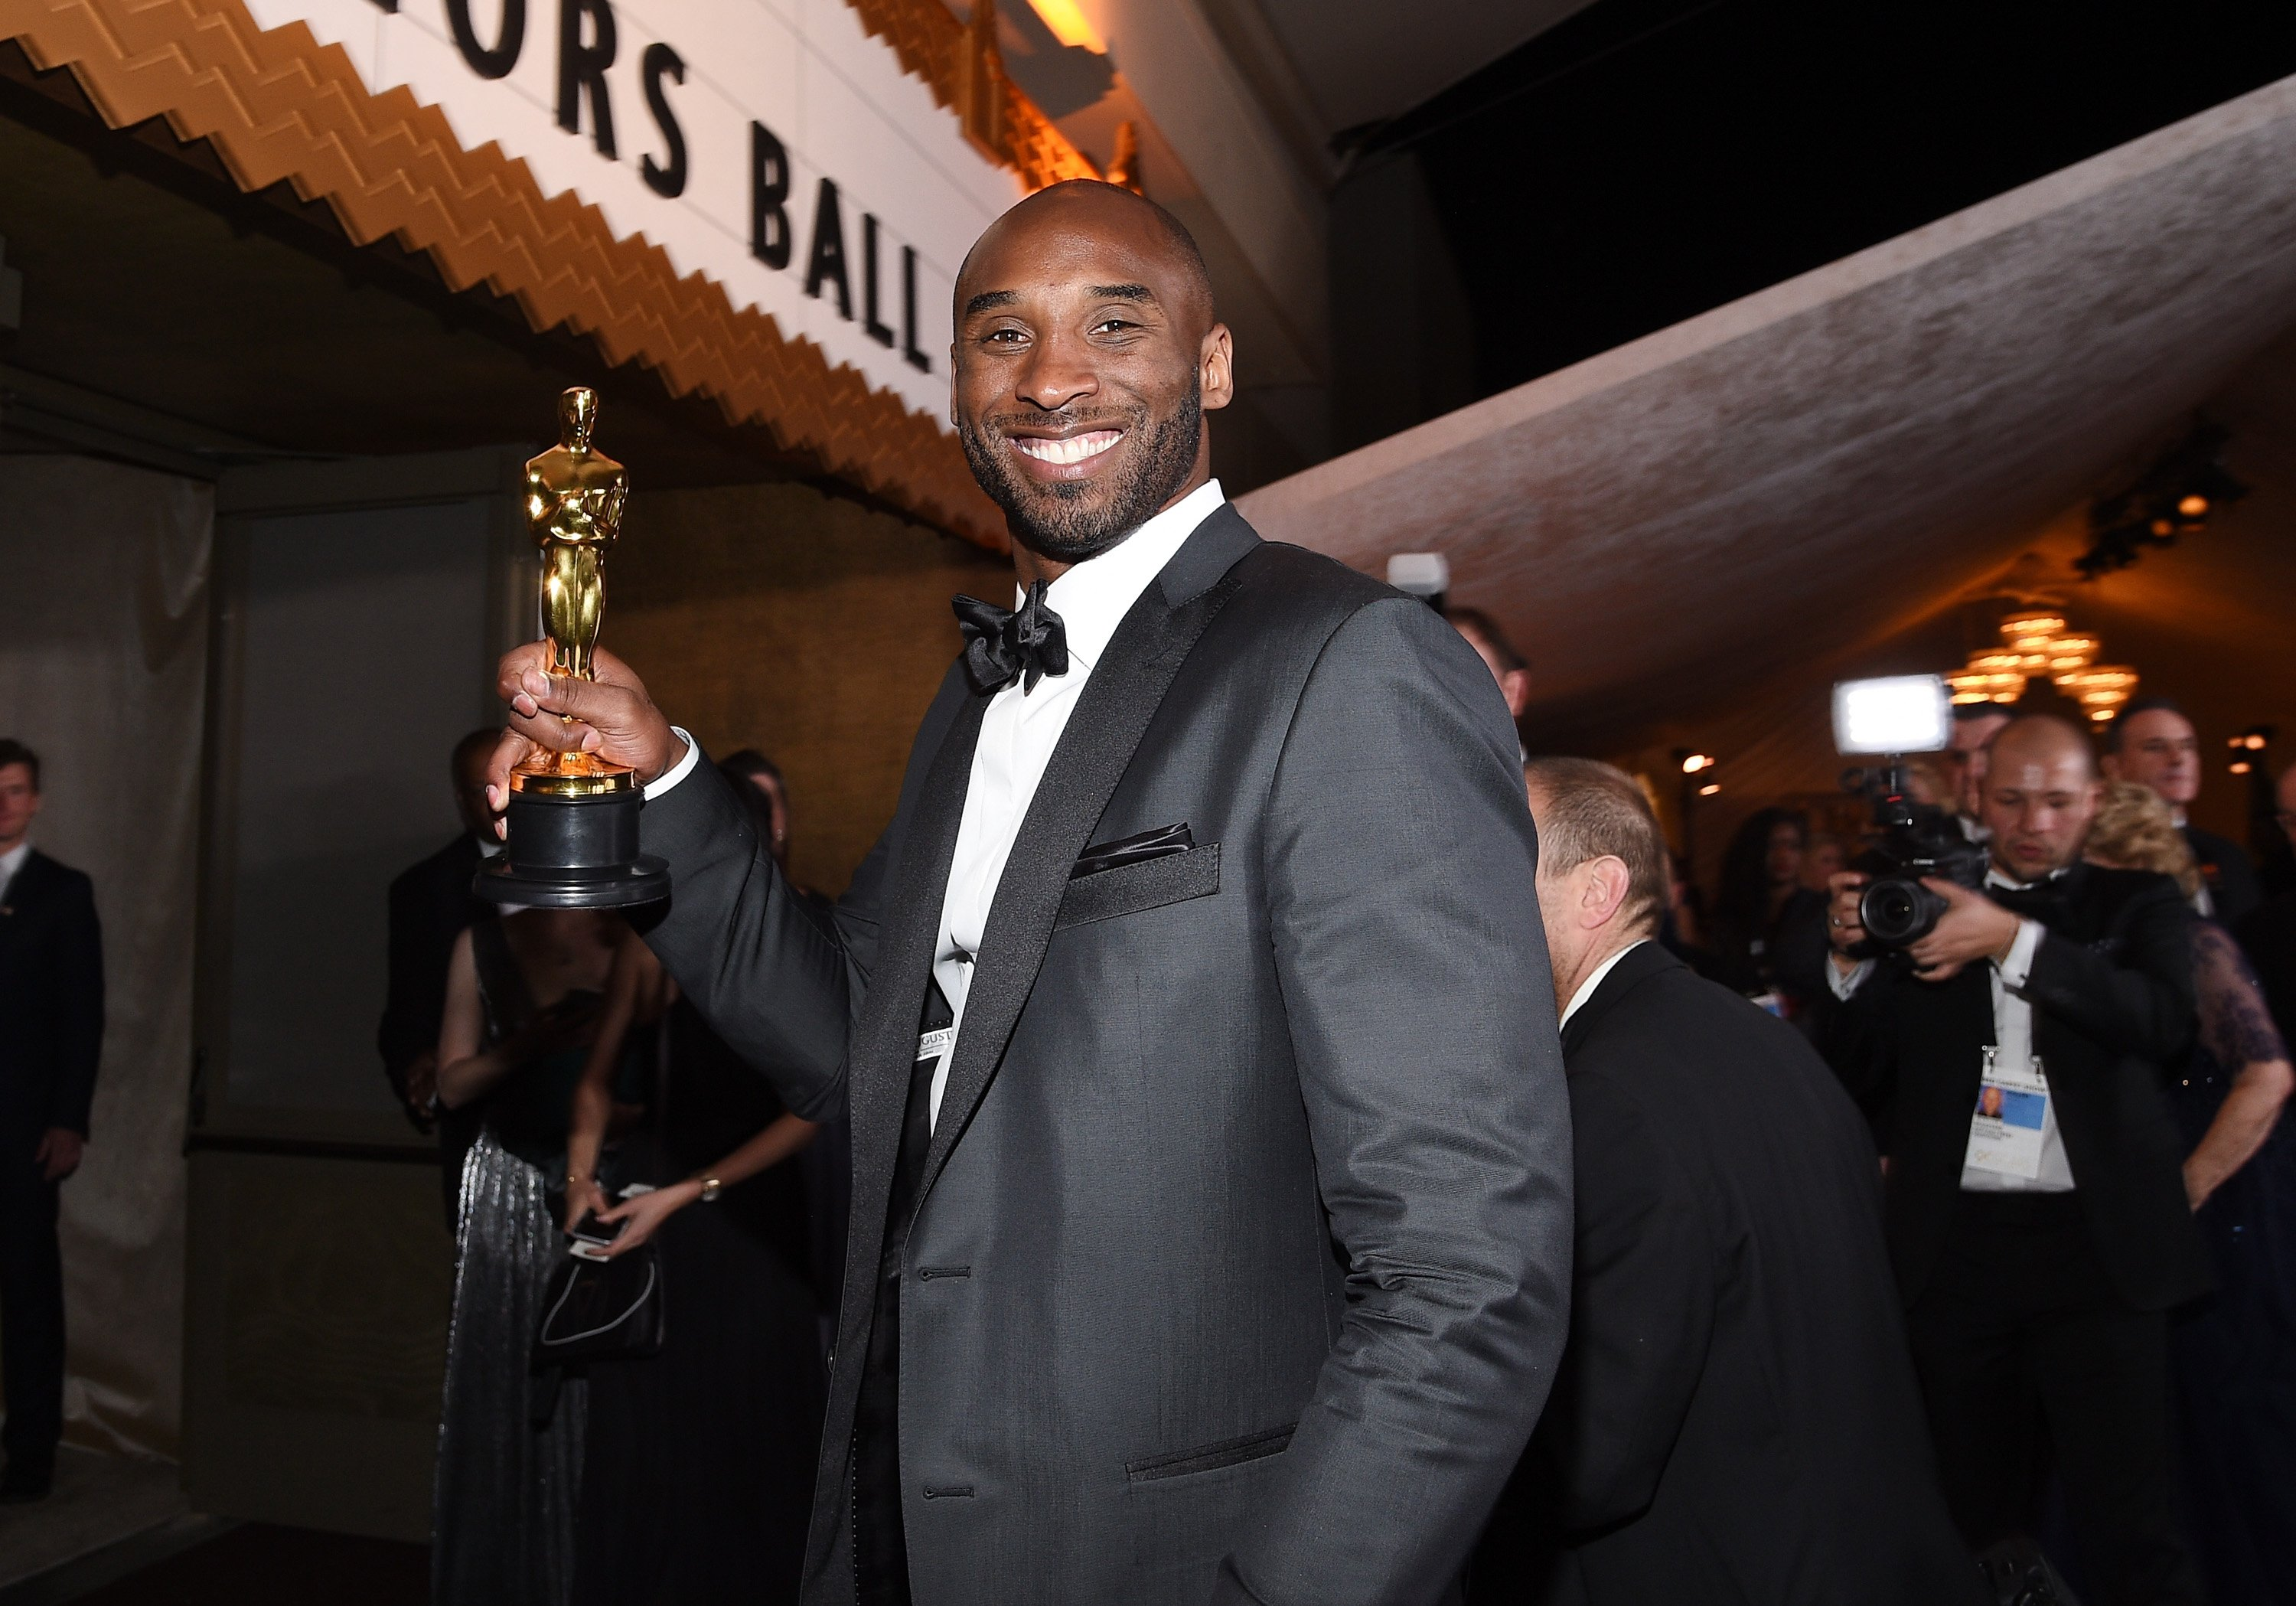 Kobe Bryant attends the 90th Annual Academy Awards Governors Ball at Hollywood & Highland Center on March 4, 2018 | Photo: GettyImages